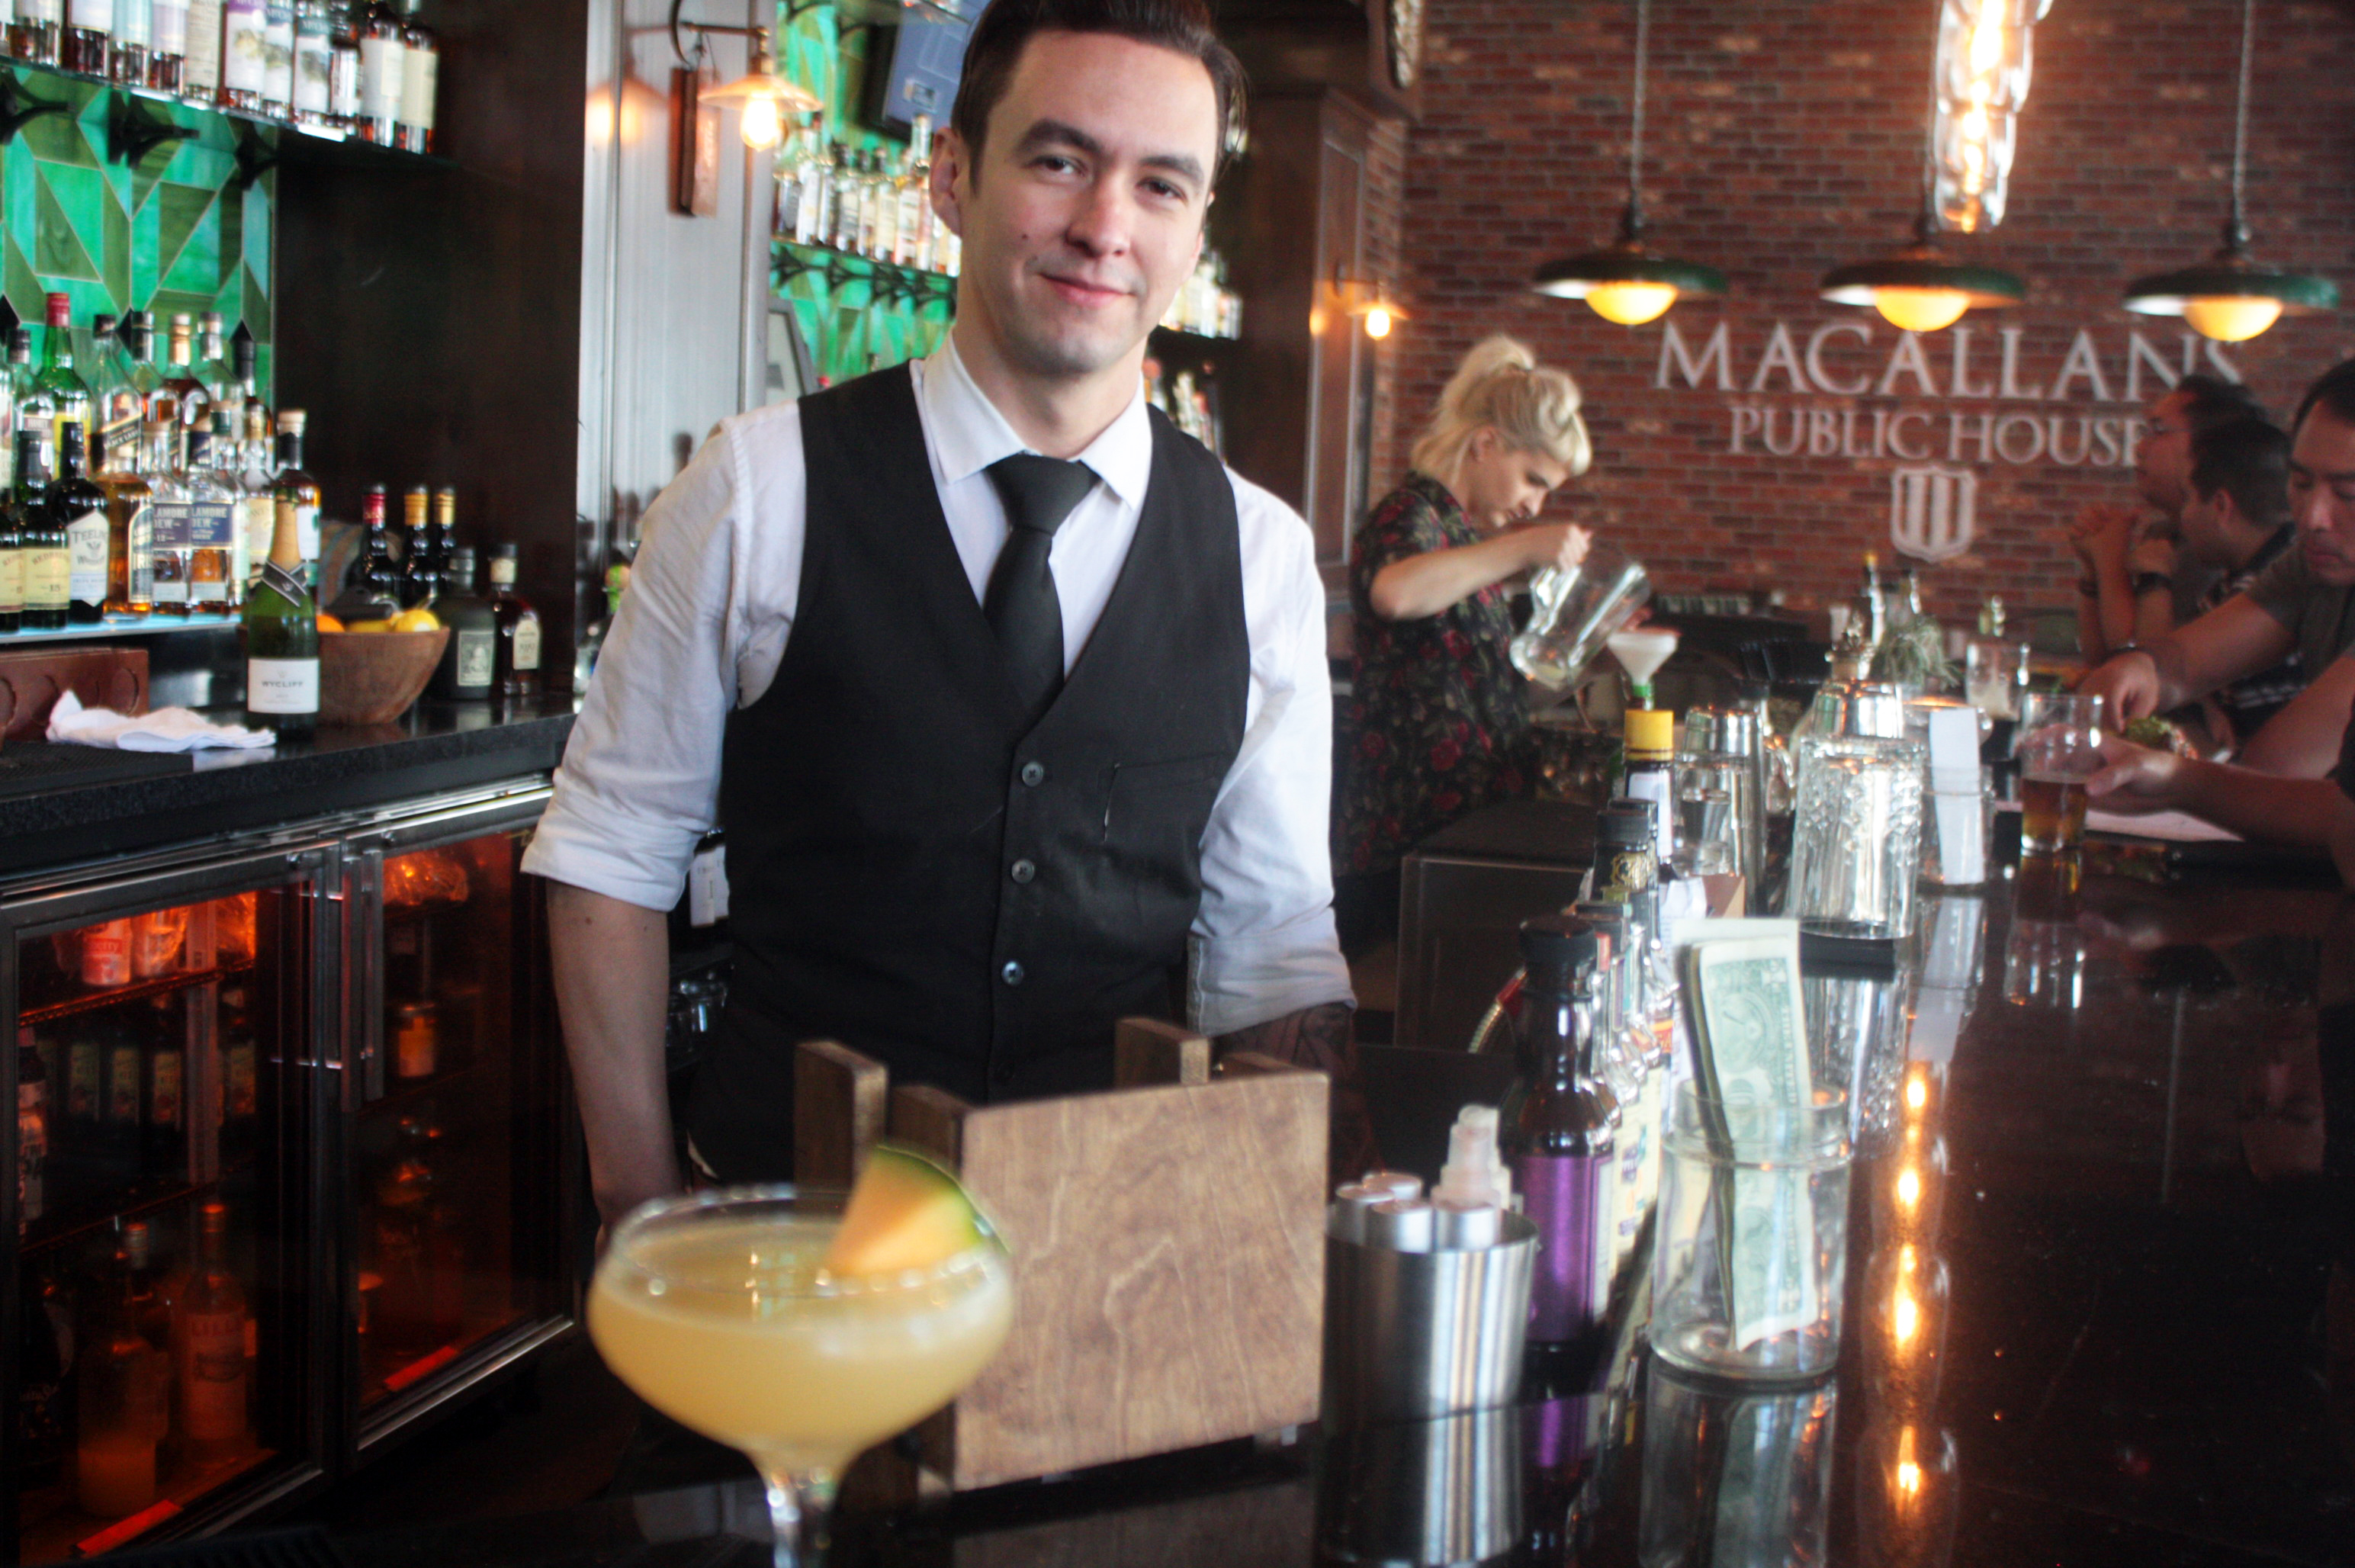 destination brea >> macallans taste of the season fullerton complementing chef r jimenez s constantly expanding kitchen repertoire new bar manager paul joseph piane brings bravura and expertise to the spirits